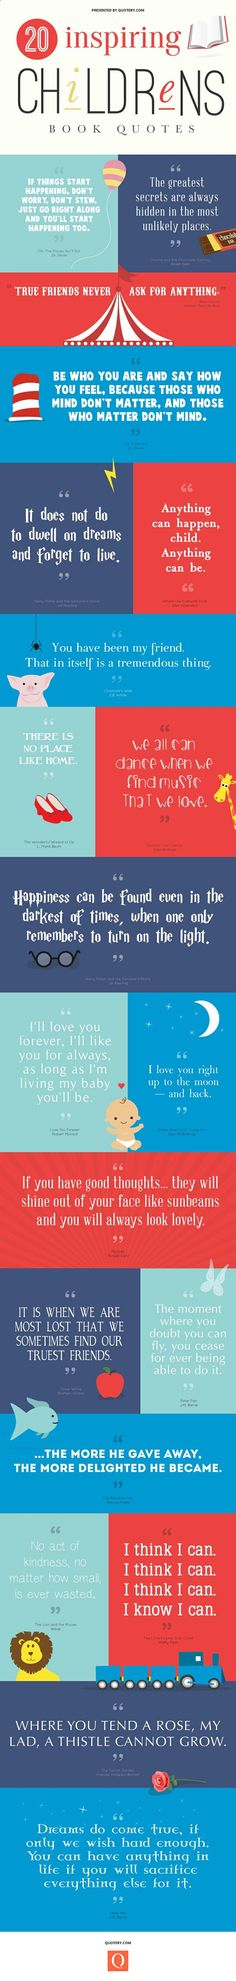 20 Inspiring Children's Book Quotes | Quotery